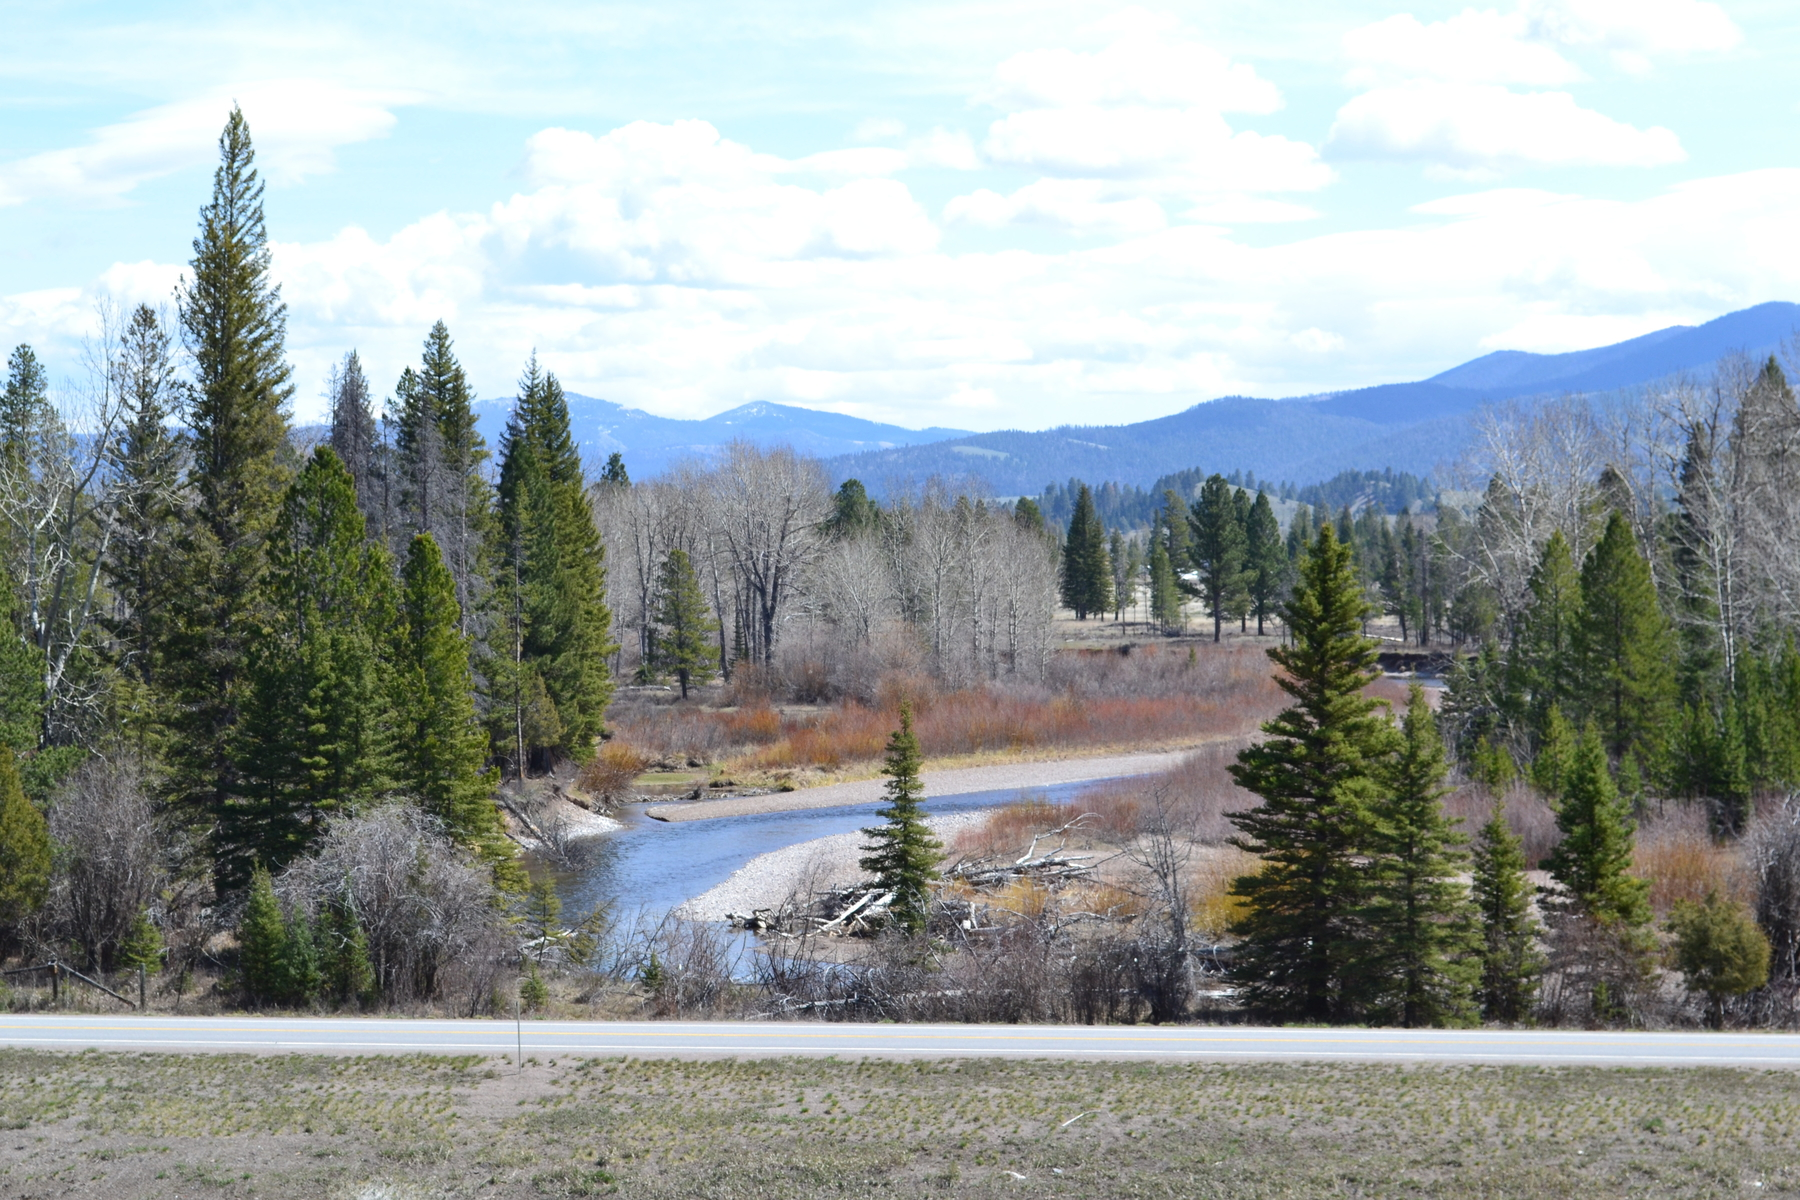 Land for Sale at 4727 MT Hwy 200 4727 Mt Highway 200 W Lincoln, Montana, 59639 United States